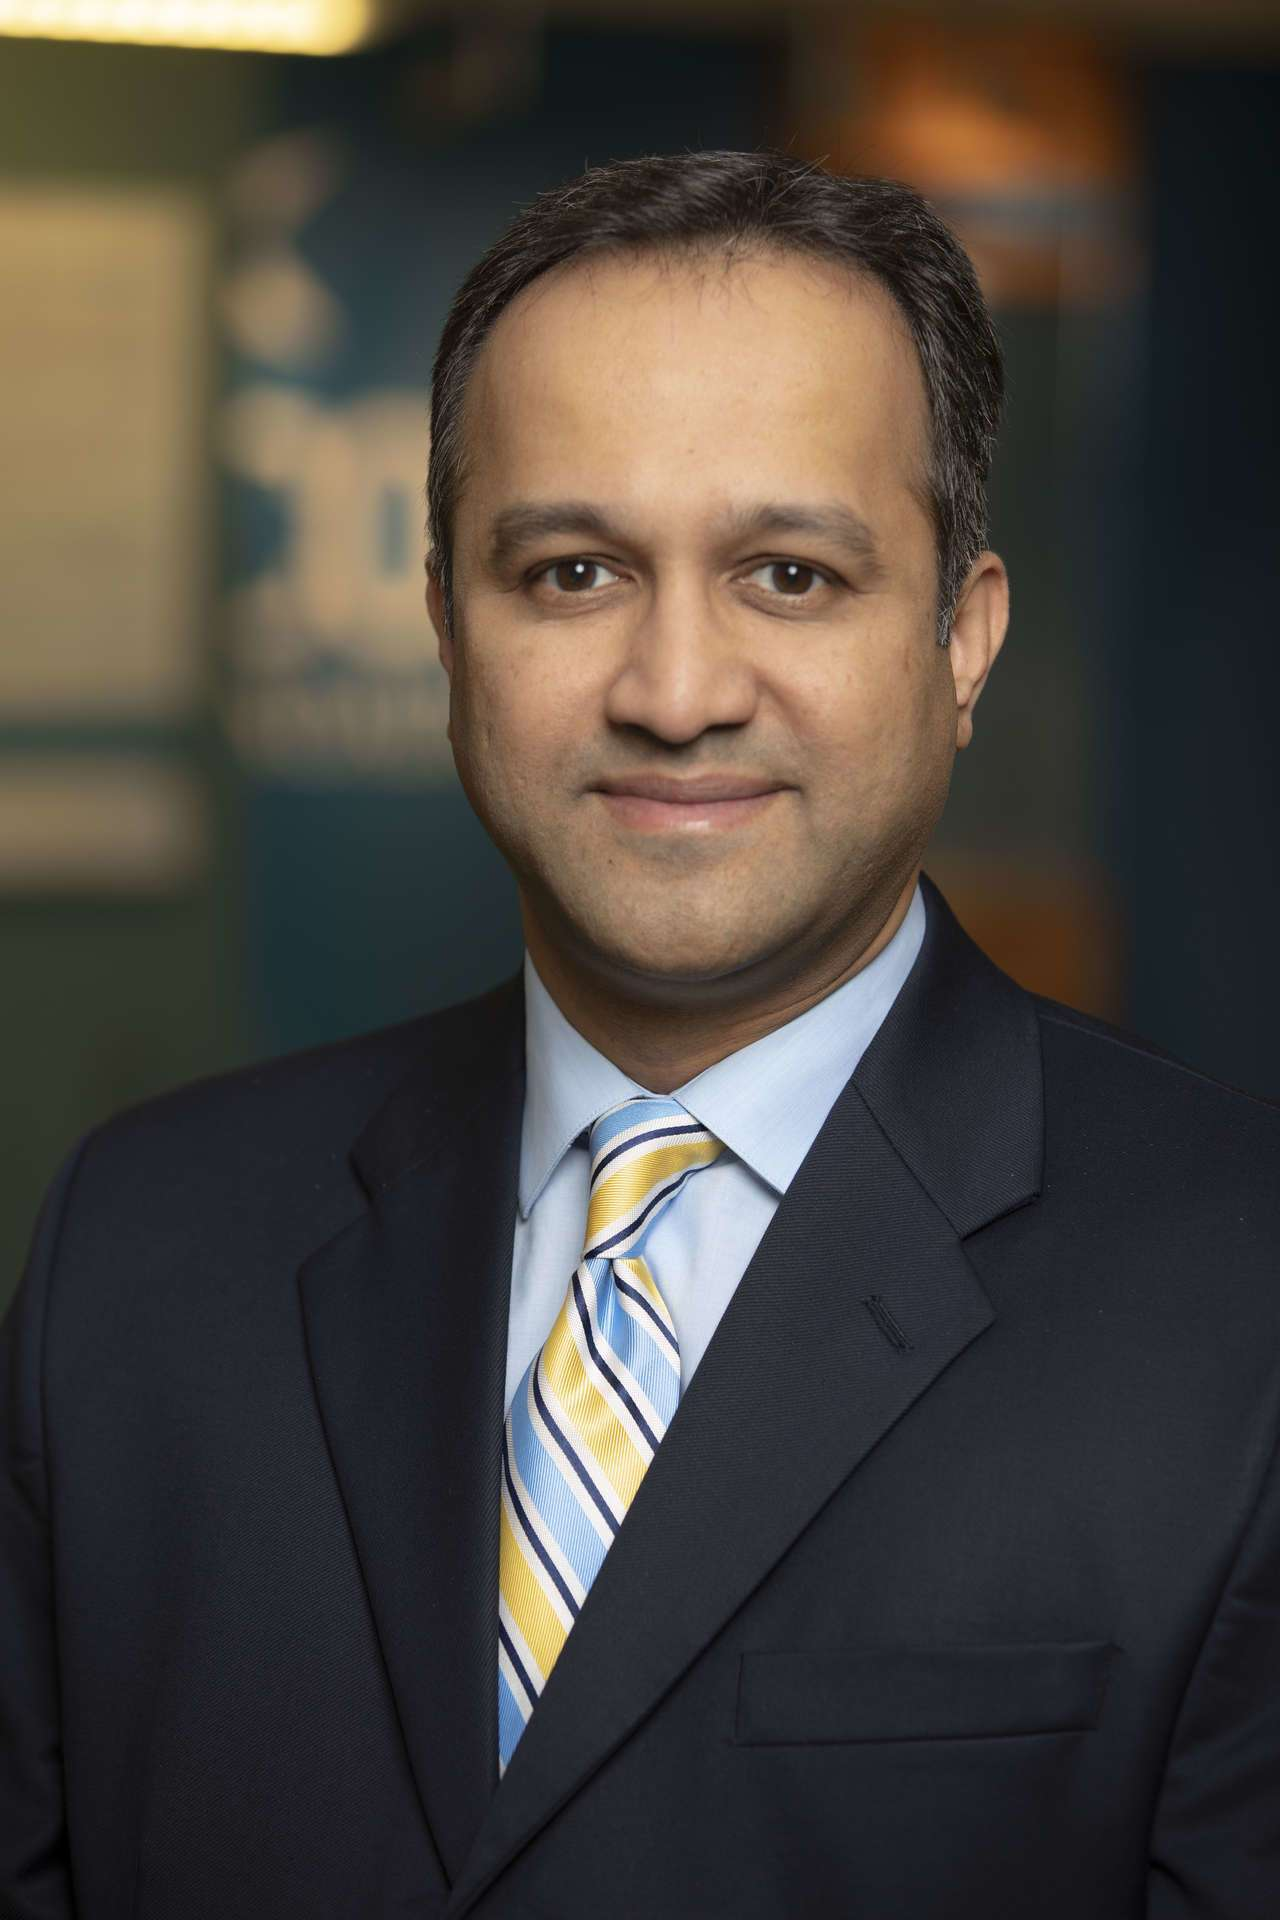 Professional photo of Beacon Health System physician, Dr. Amjad Syed.